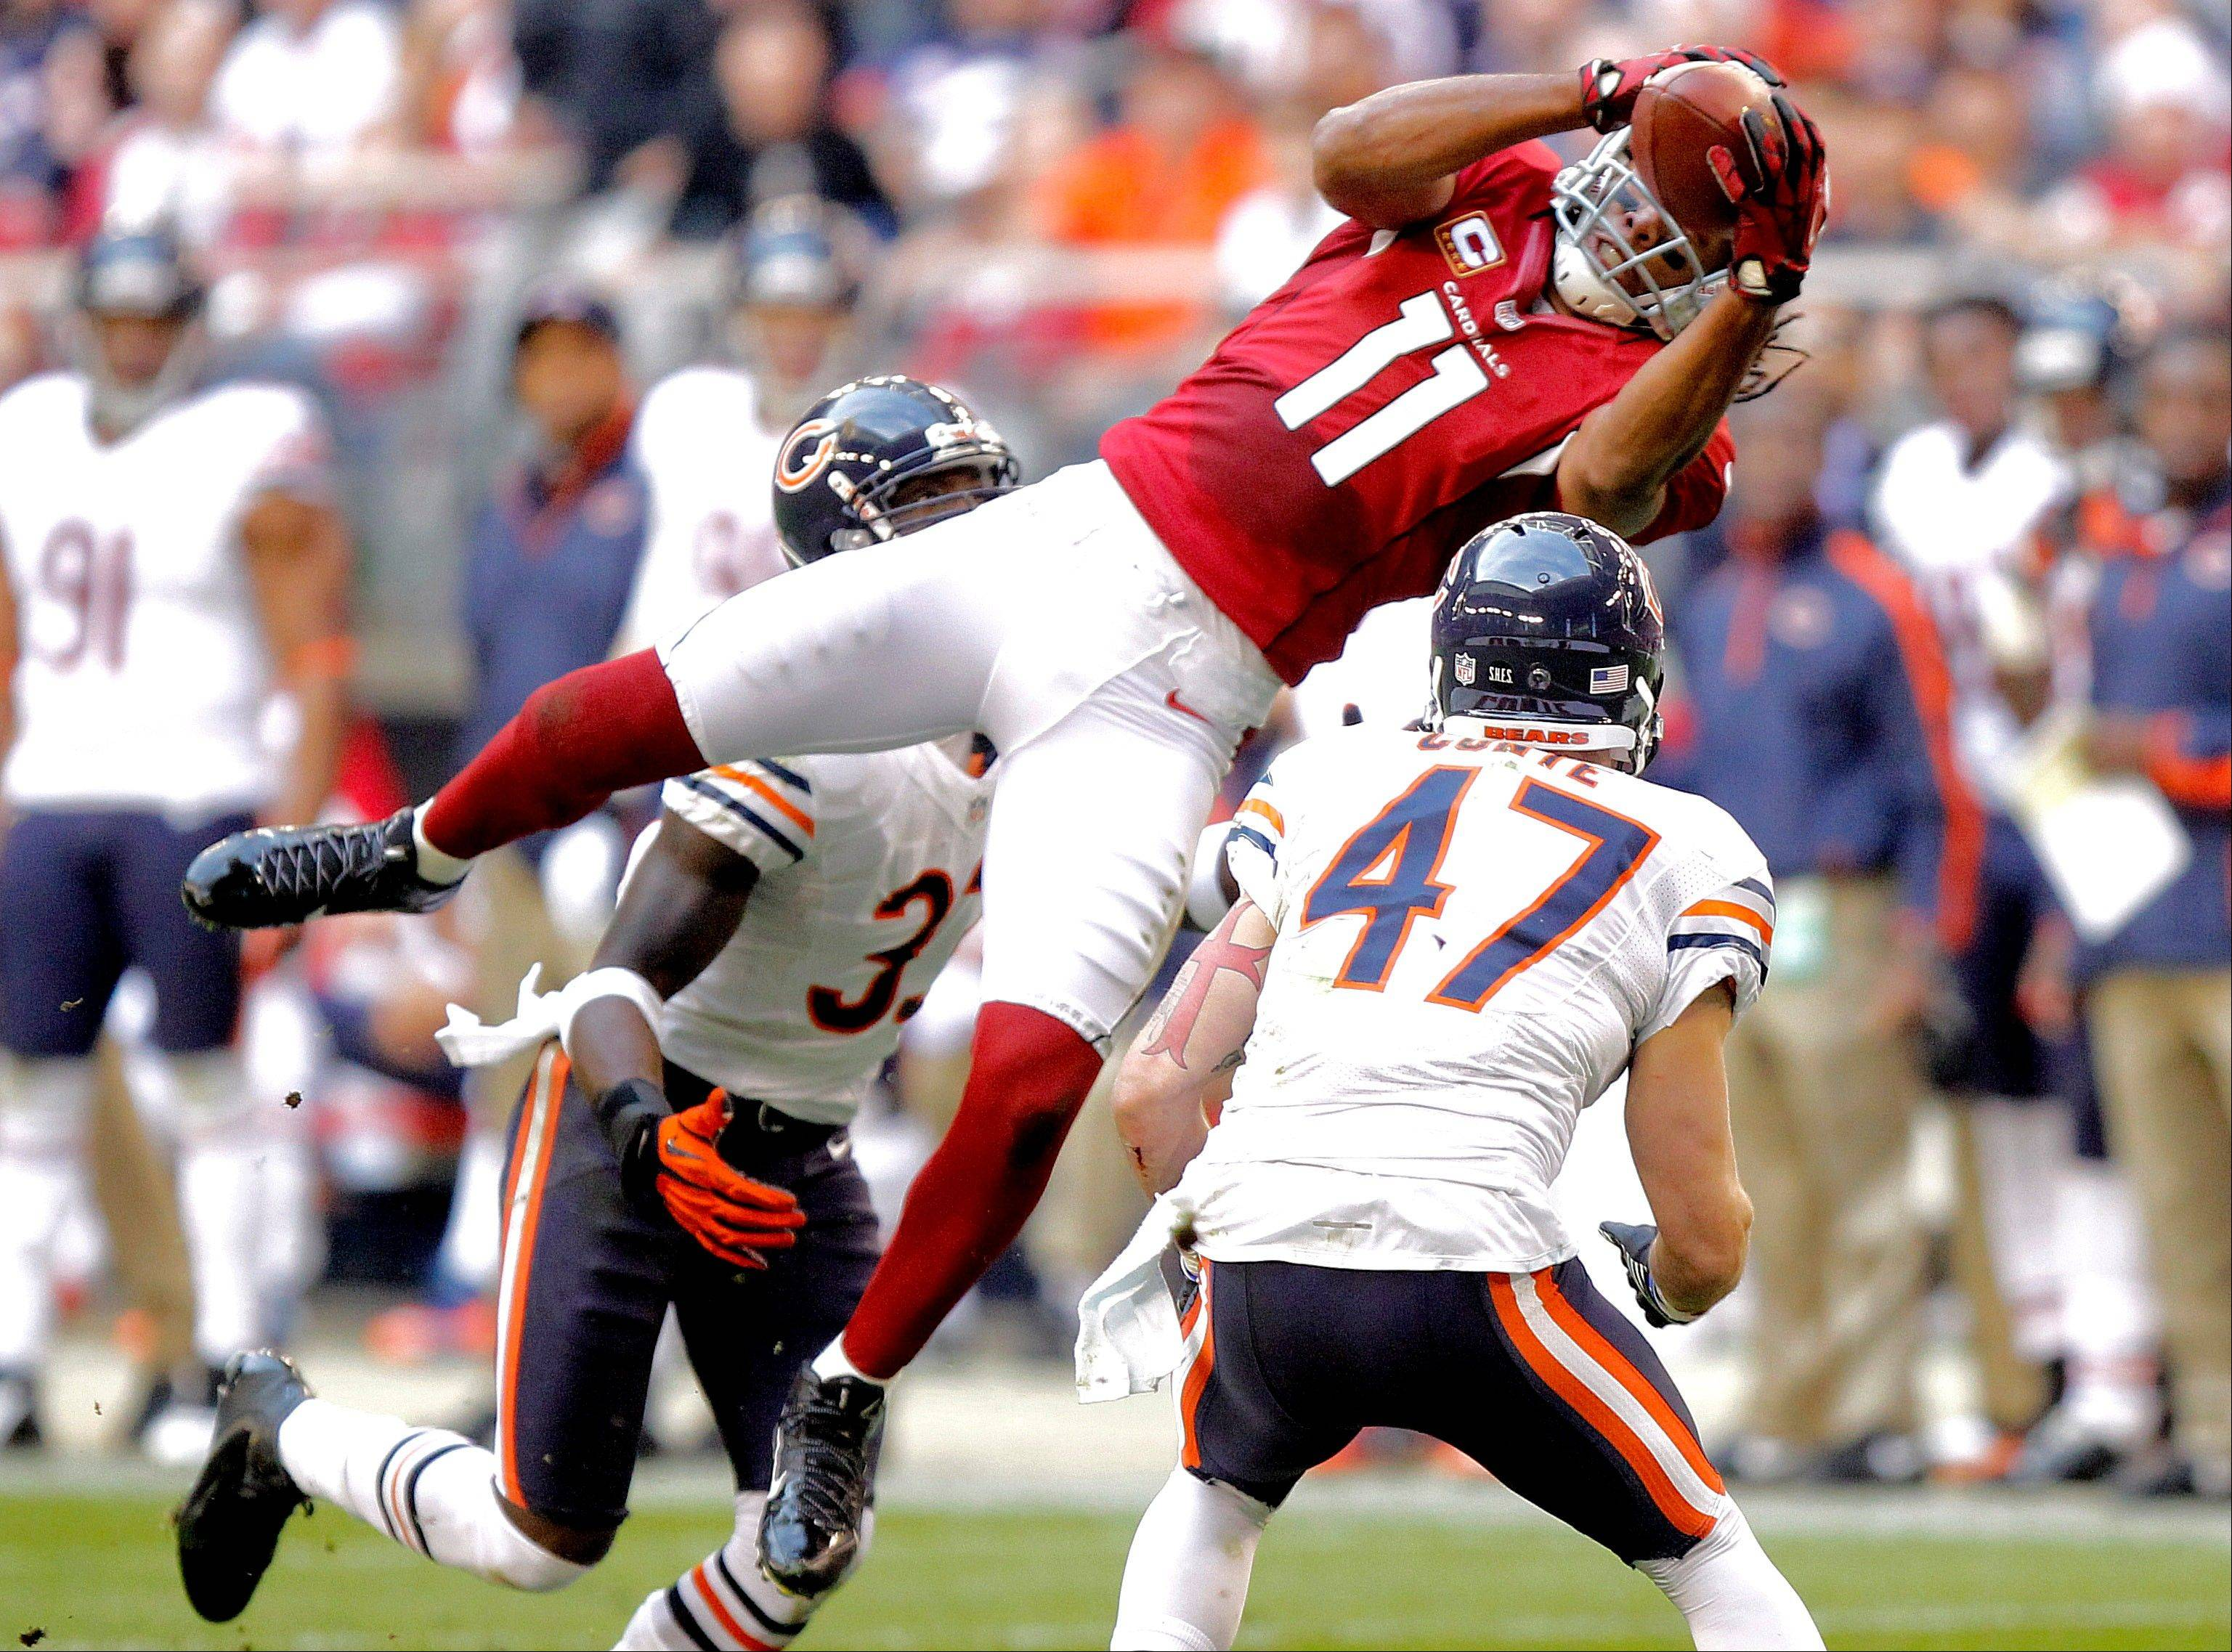 Arizona Cardinals wide receiver Larry Fitzgerald leaps for a pass as Chicago Bears free safety Chris Conte defends during the first half.